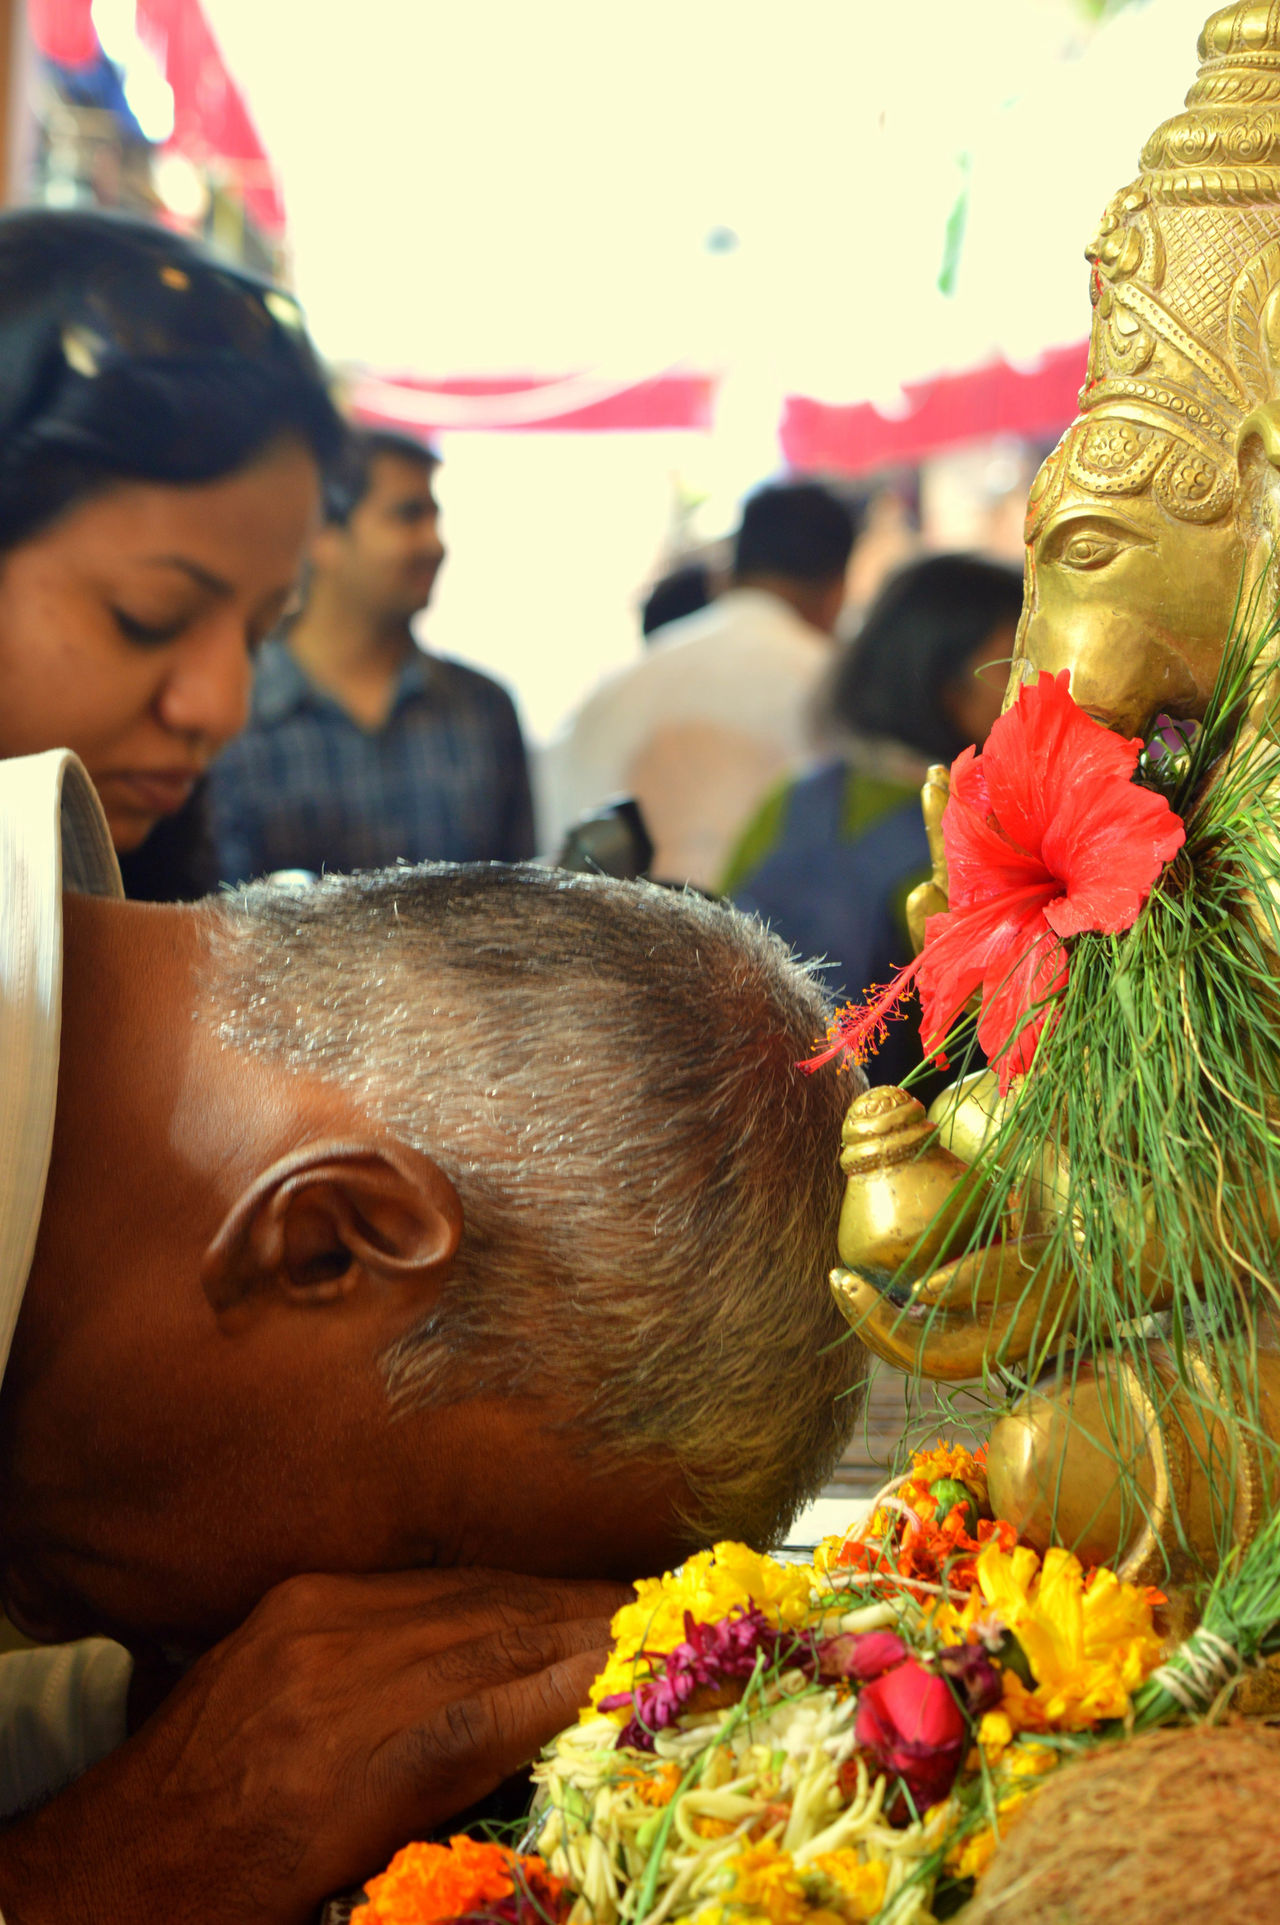 https://www.facebook.com/shraddhabagrodiasphotography/ 500px Art Close-up Culture Cultures Day Devoted Festival Flower Ganpati GanpatiBappaMorya India Lifestyles Man Old Outdoors Praying Pune Puneclickarts Punediaries Puneinstagrammers Punekars Tradition